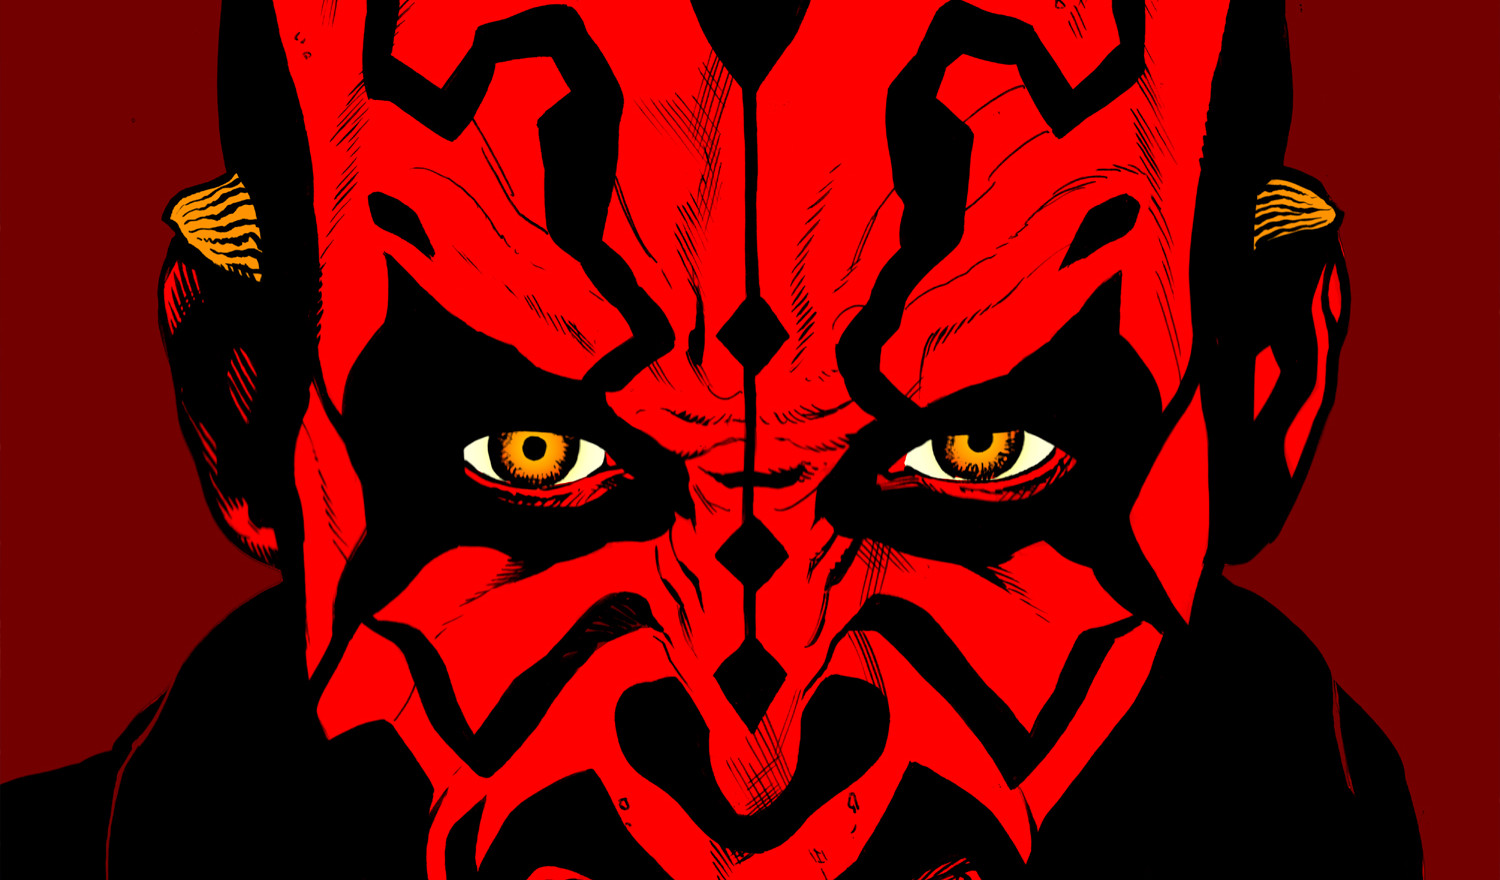 Darth Maul, Star Wars: The Phantom Menace